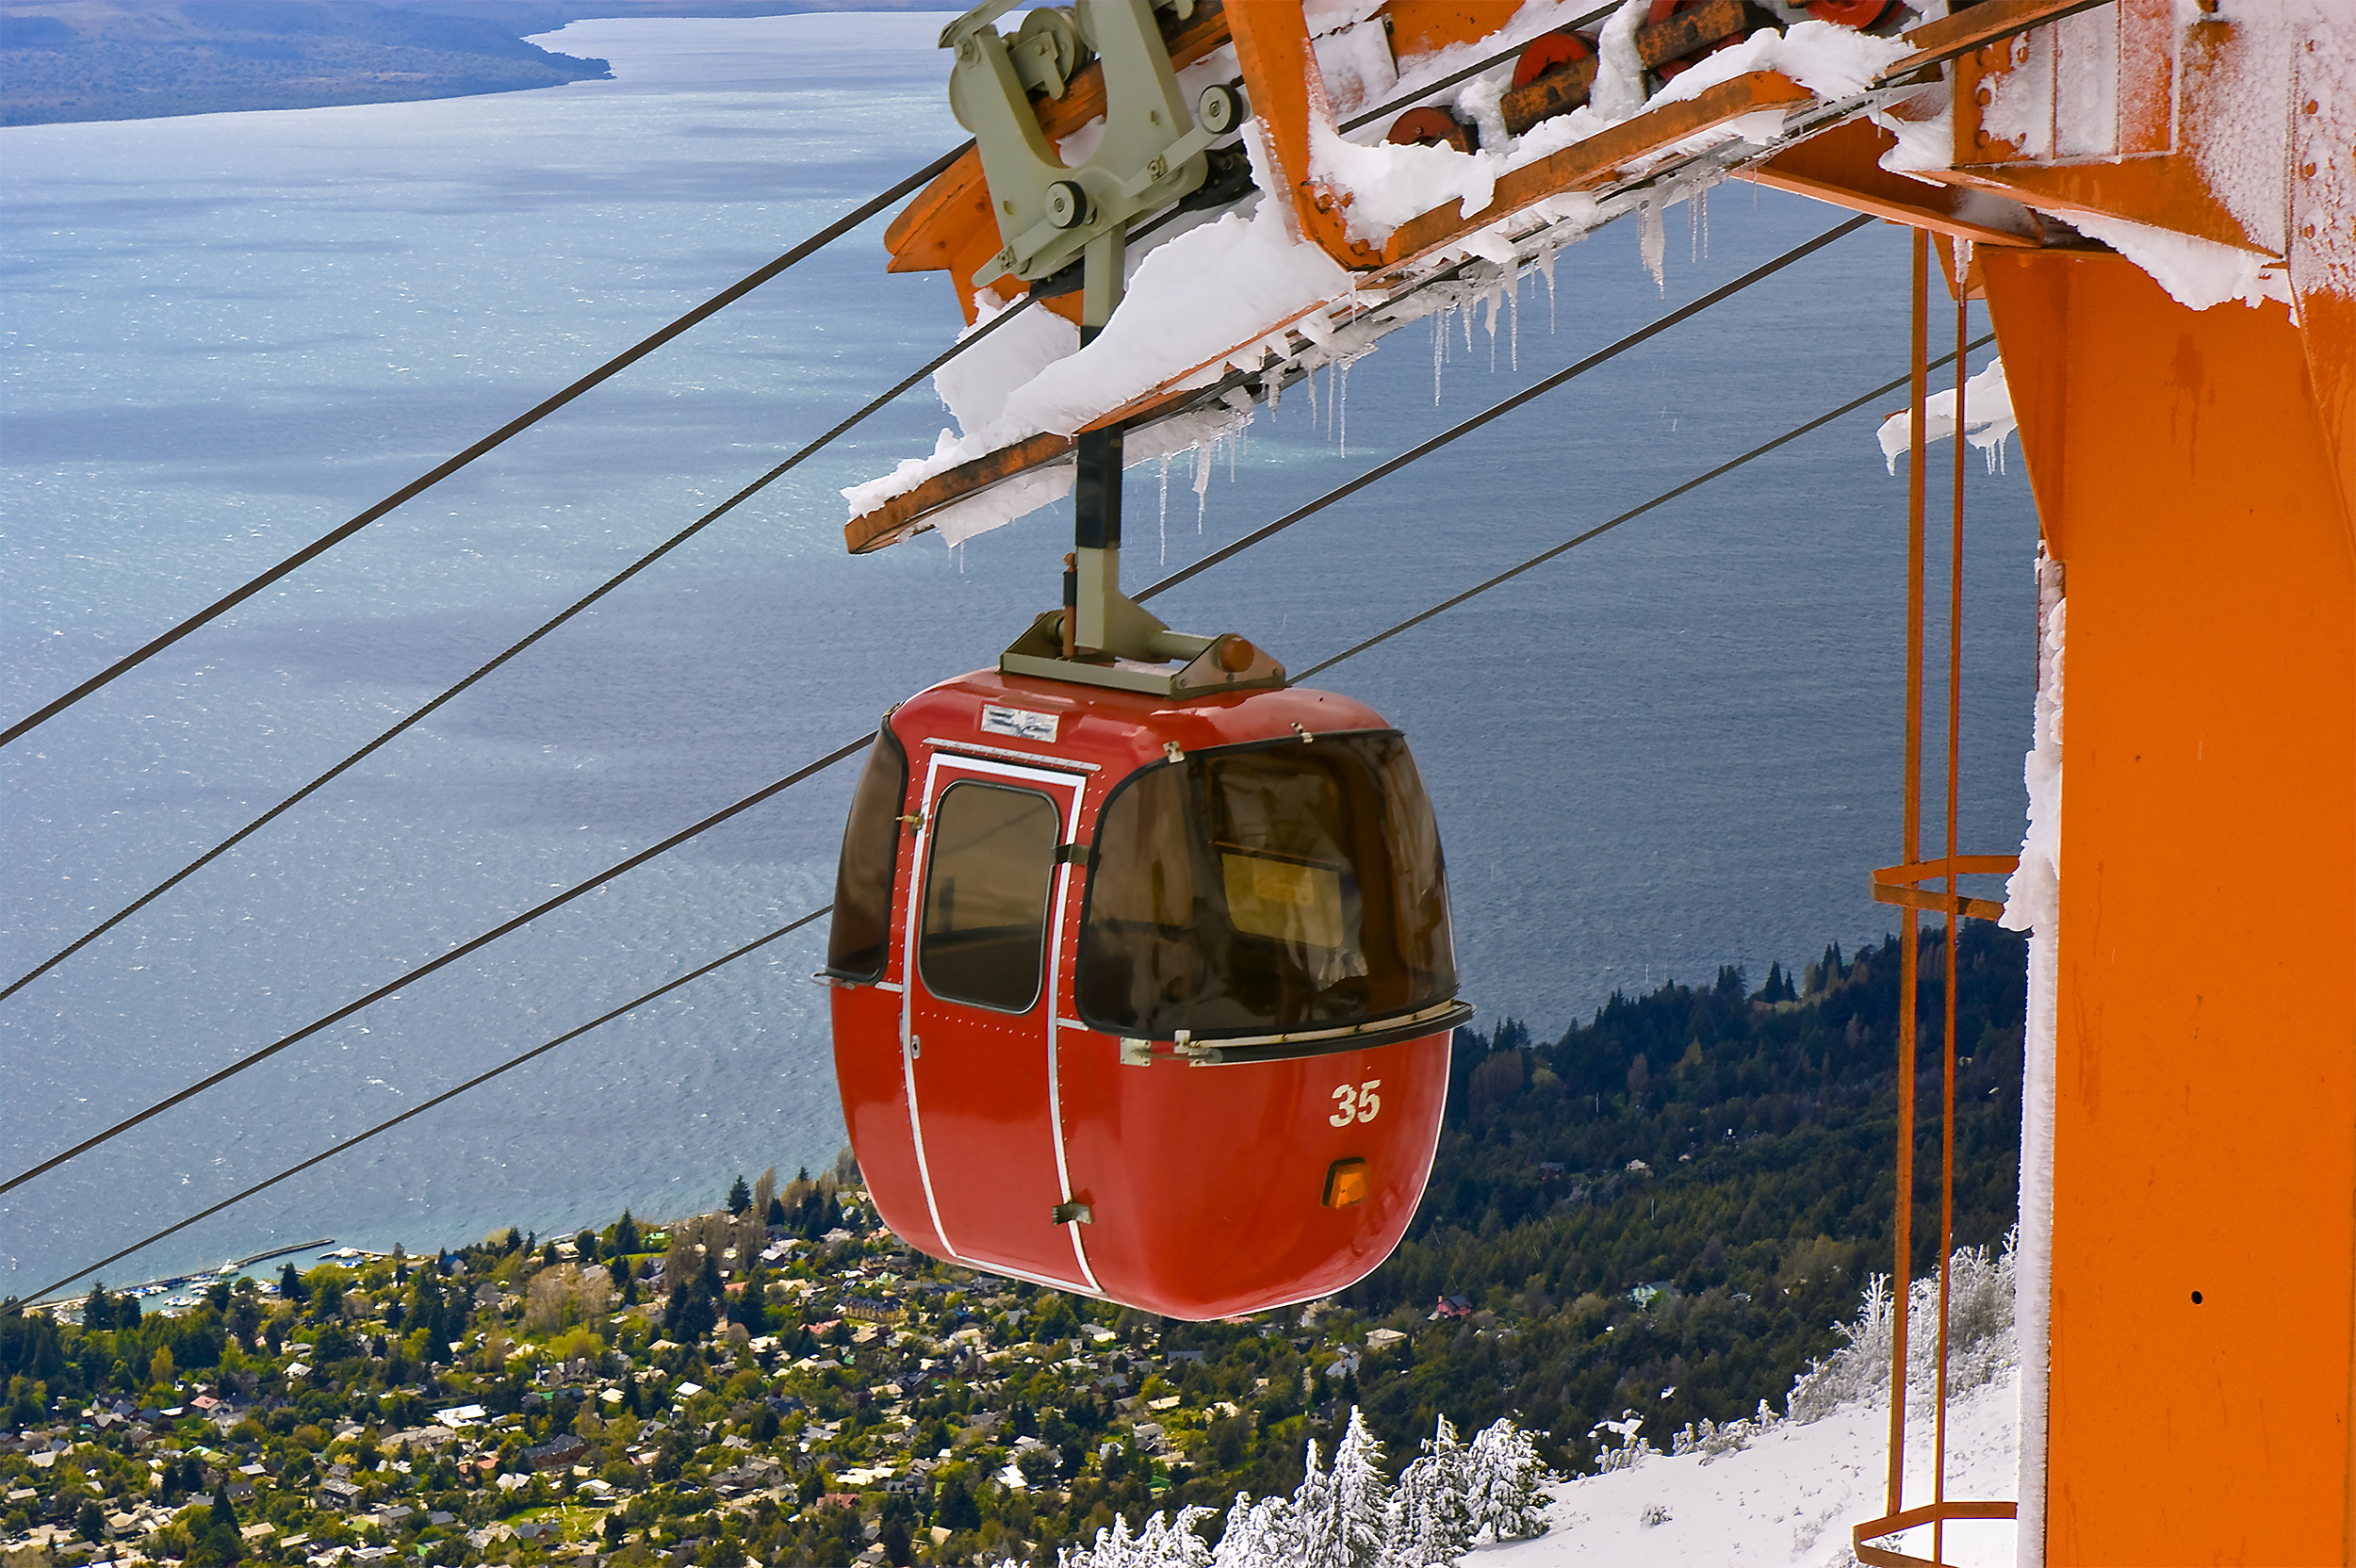 argentina_bariloche_bigstock-Cable-Railway-By-A-Lake-7871318.jpg